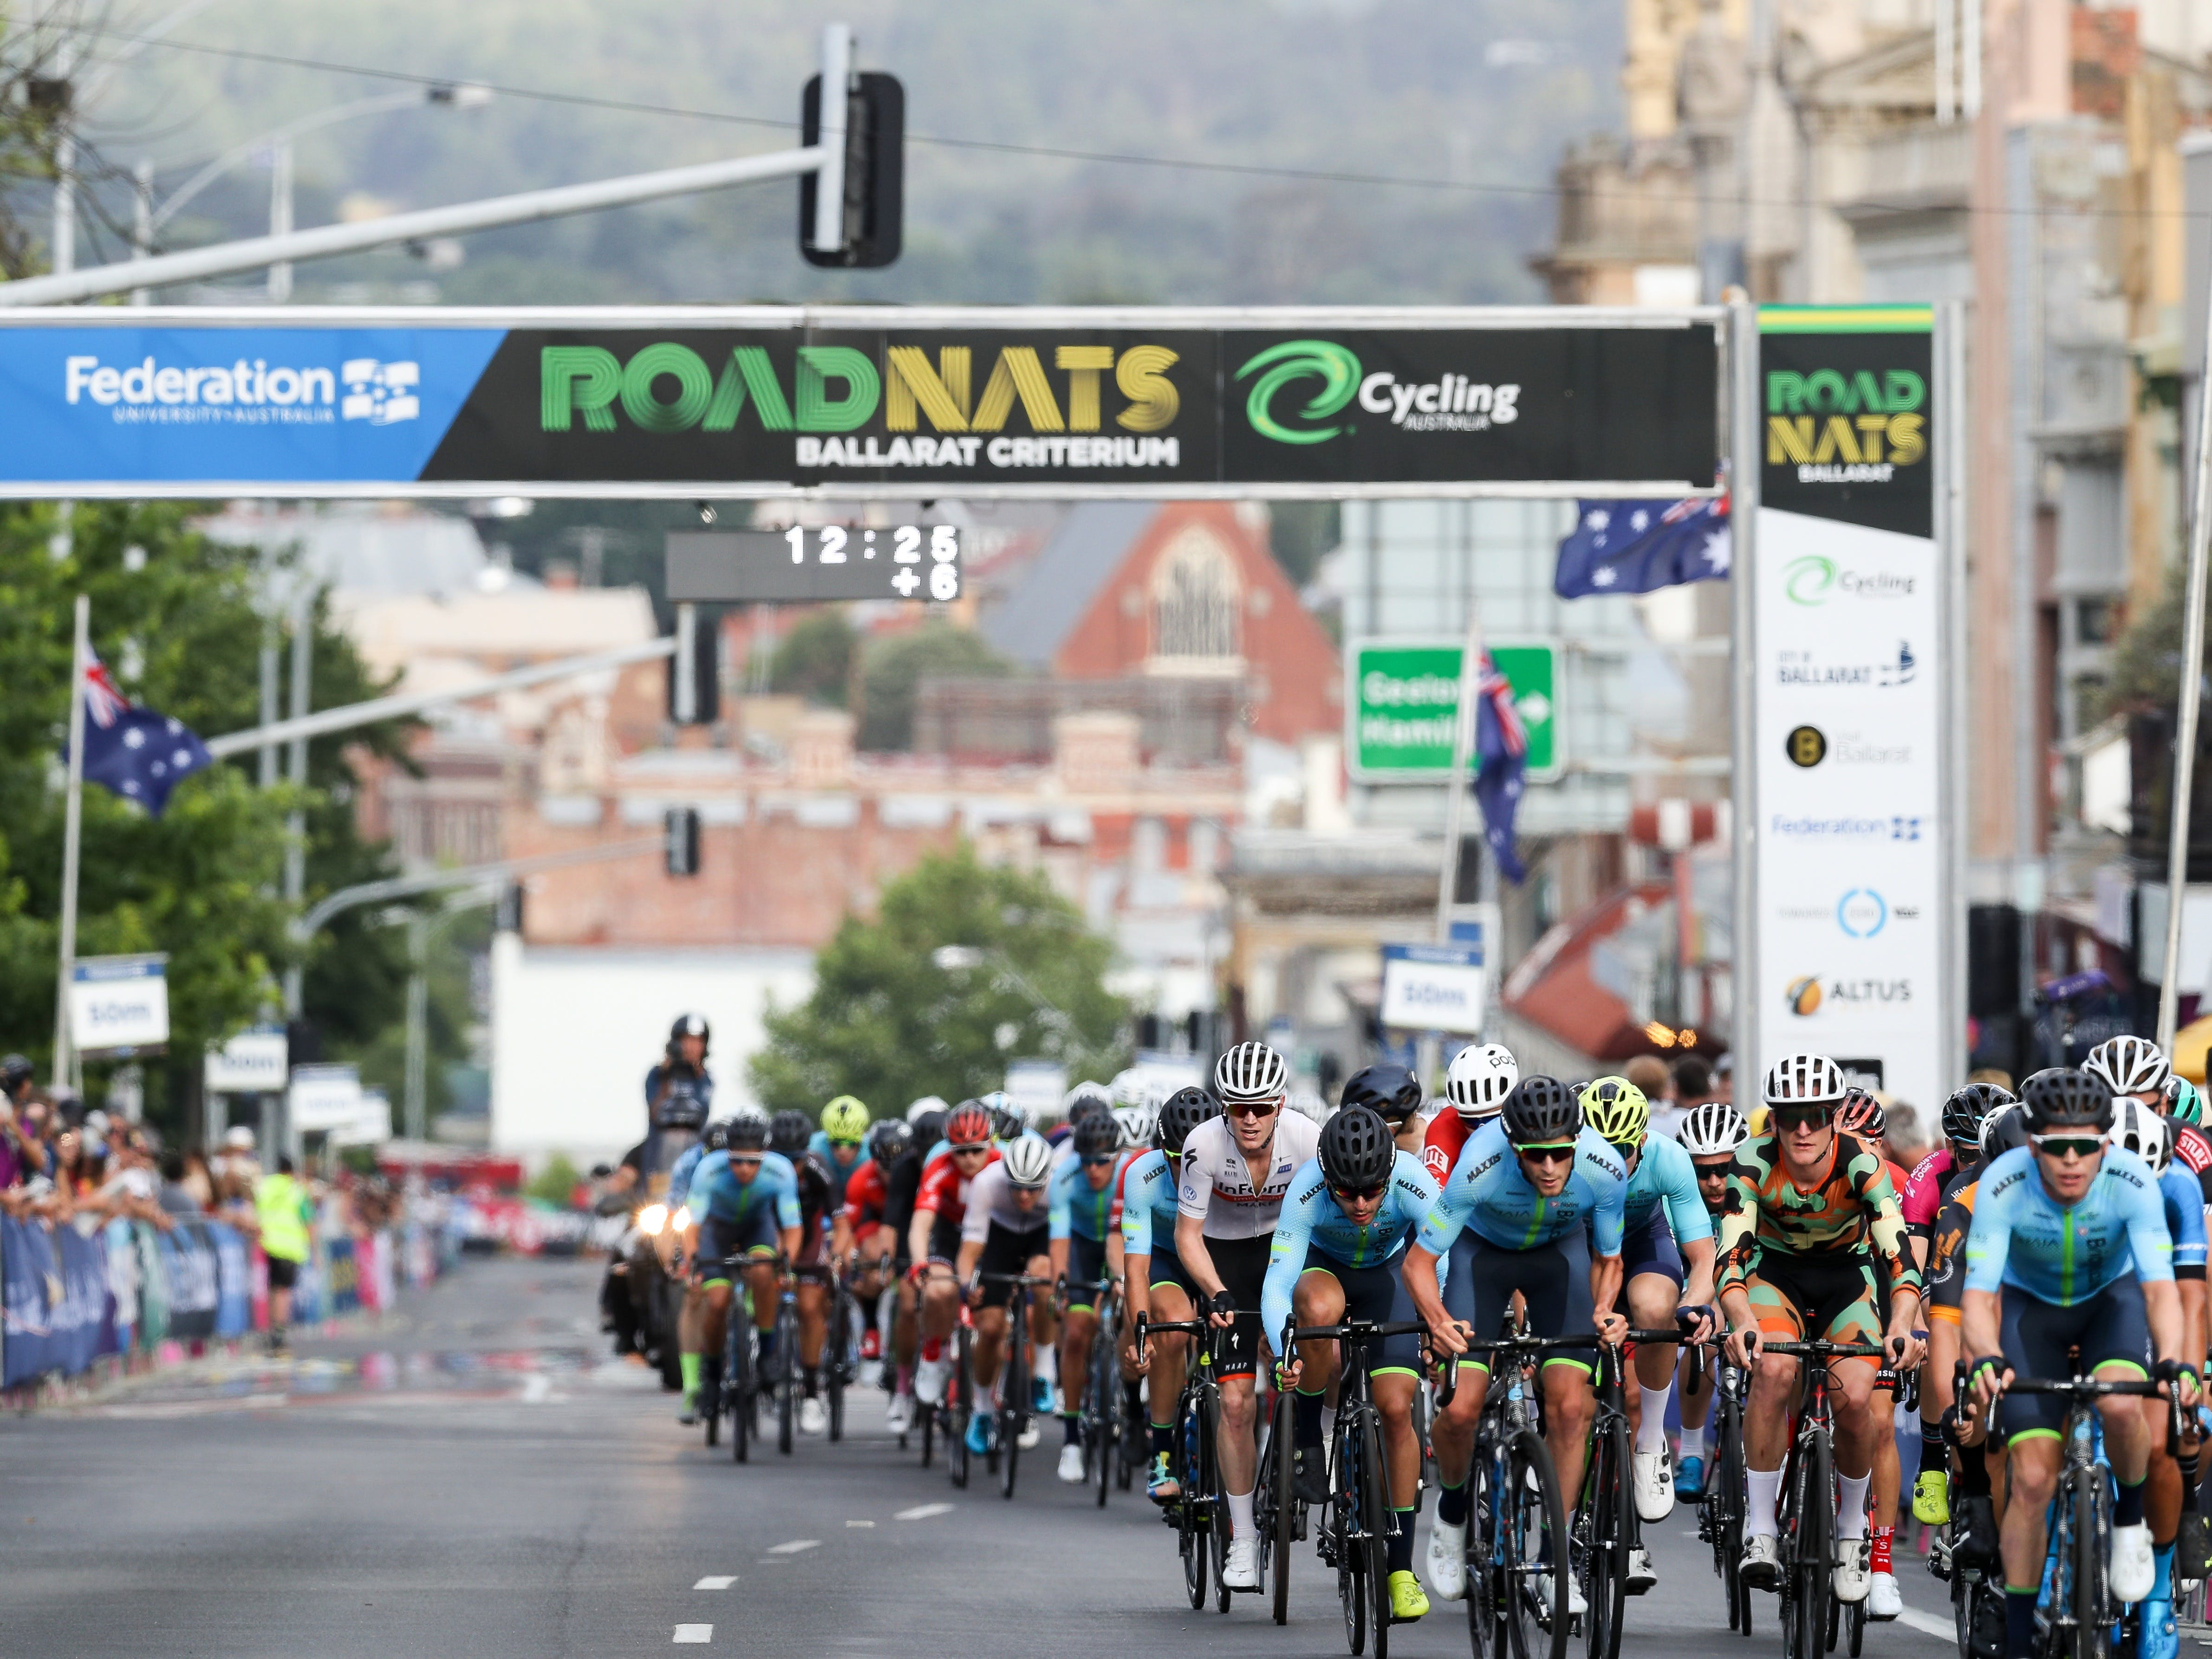 Federation University Criterium National Championships - Ballarat - Accommodation QLD